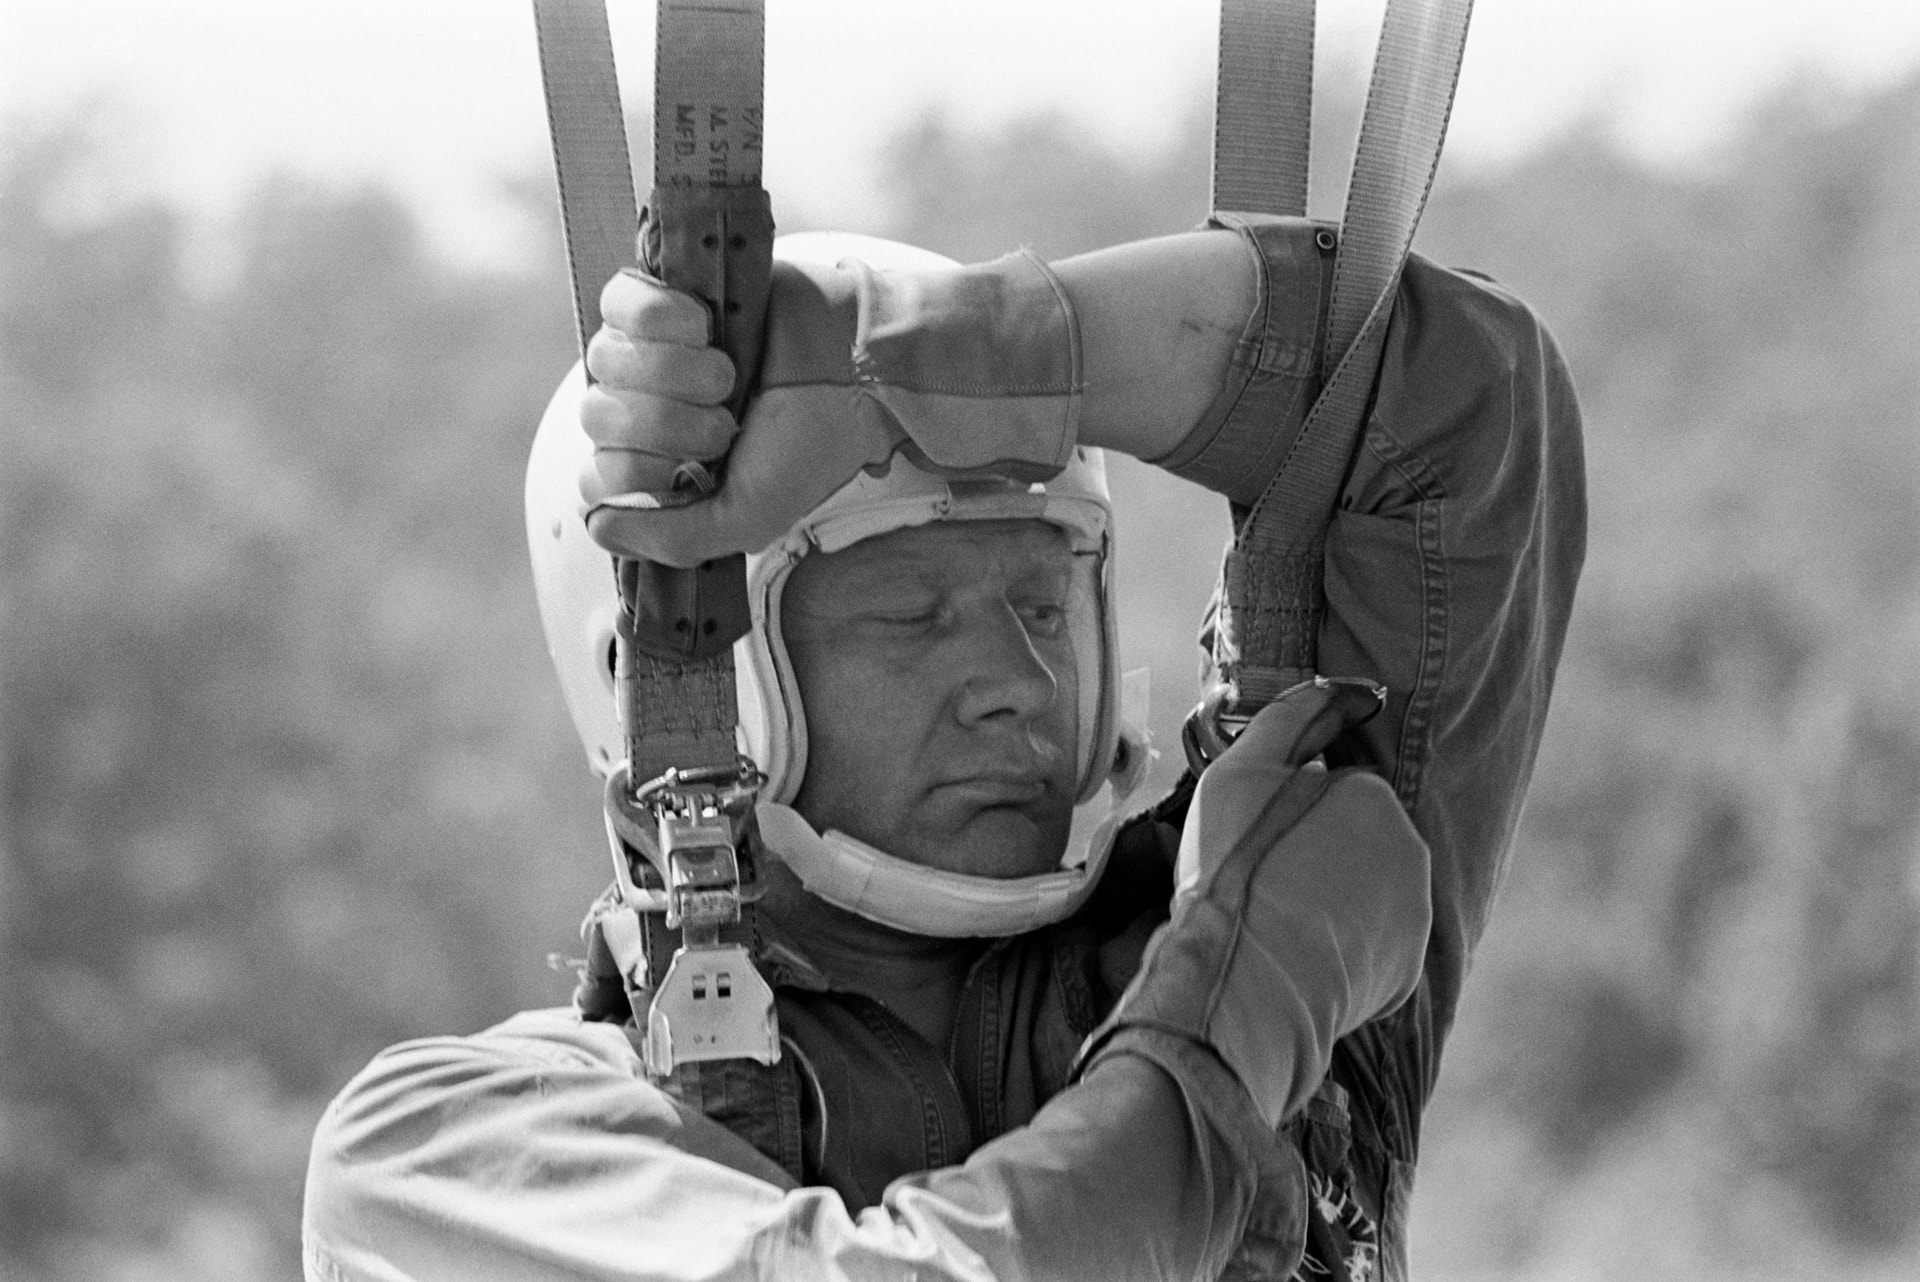 Créditos fotográficos: NASA Johnson.